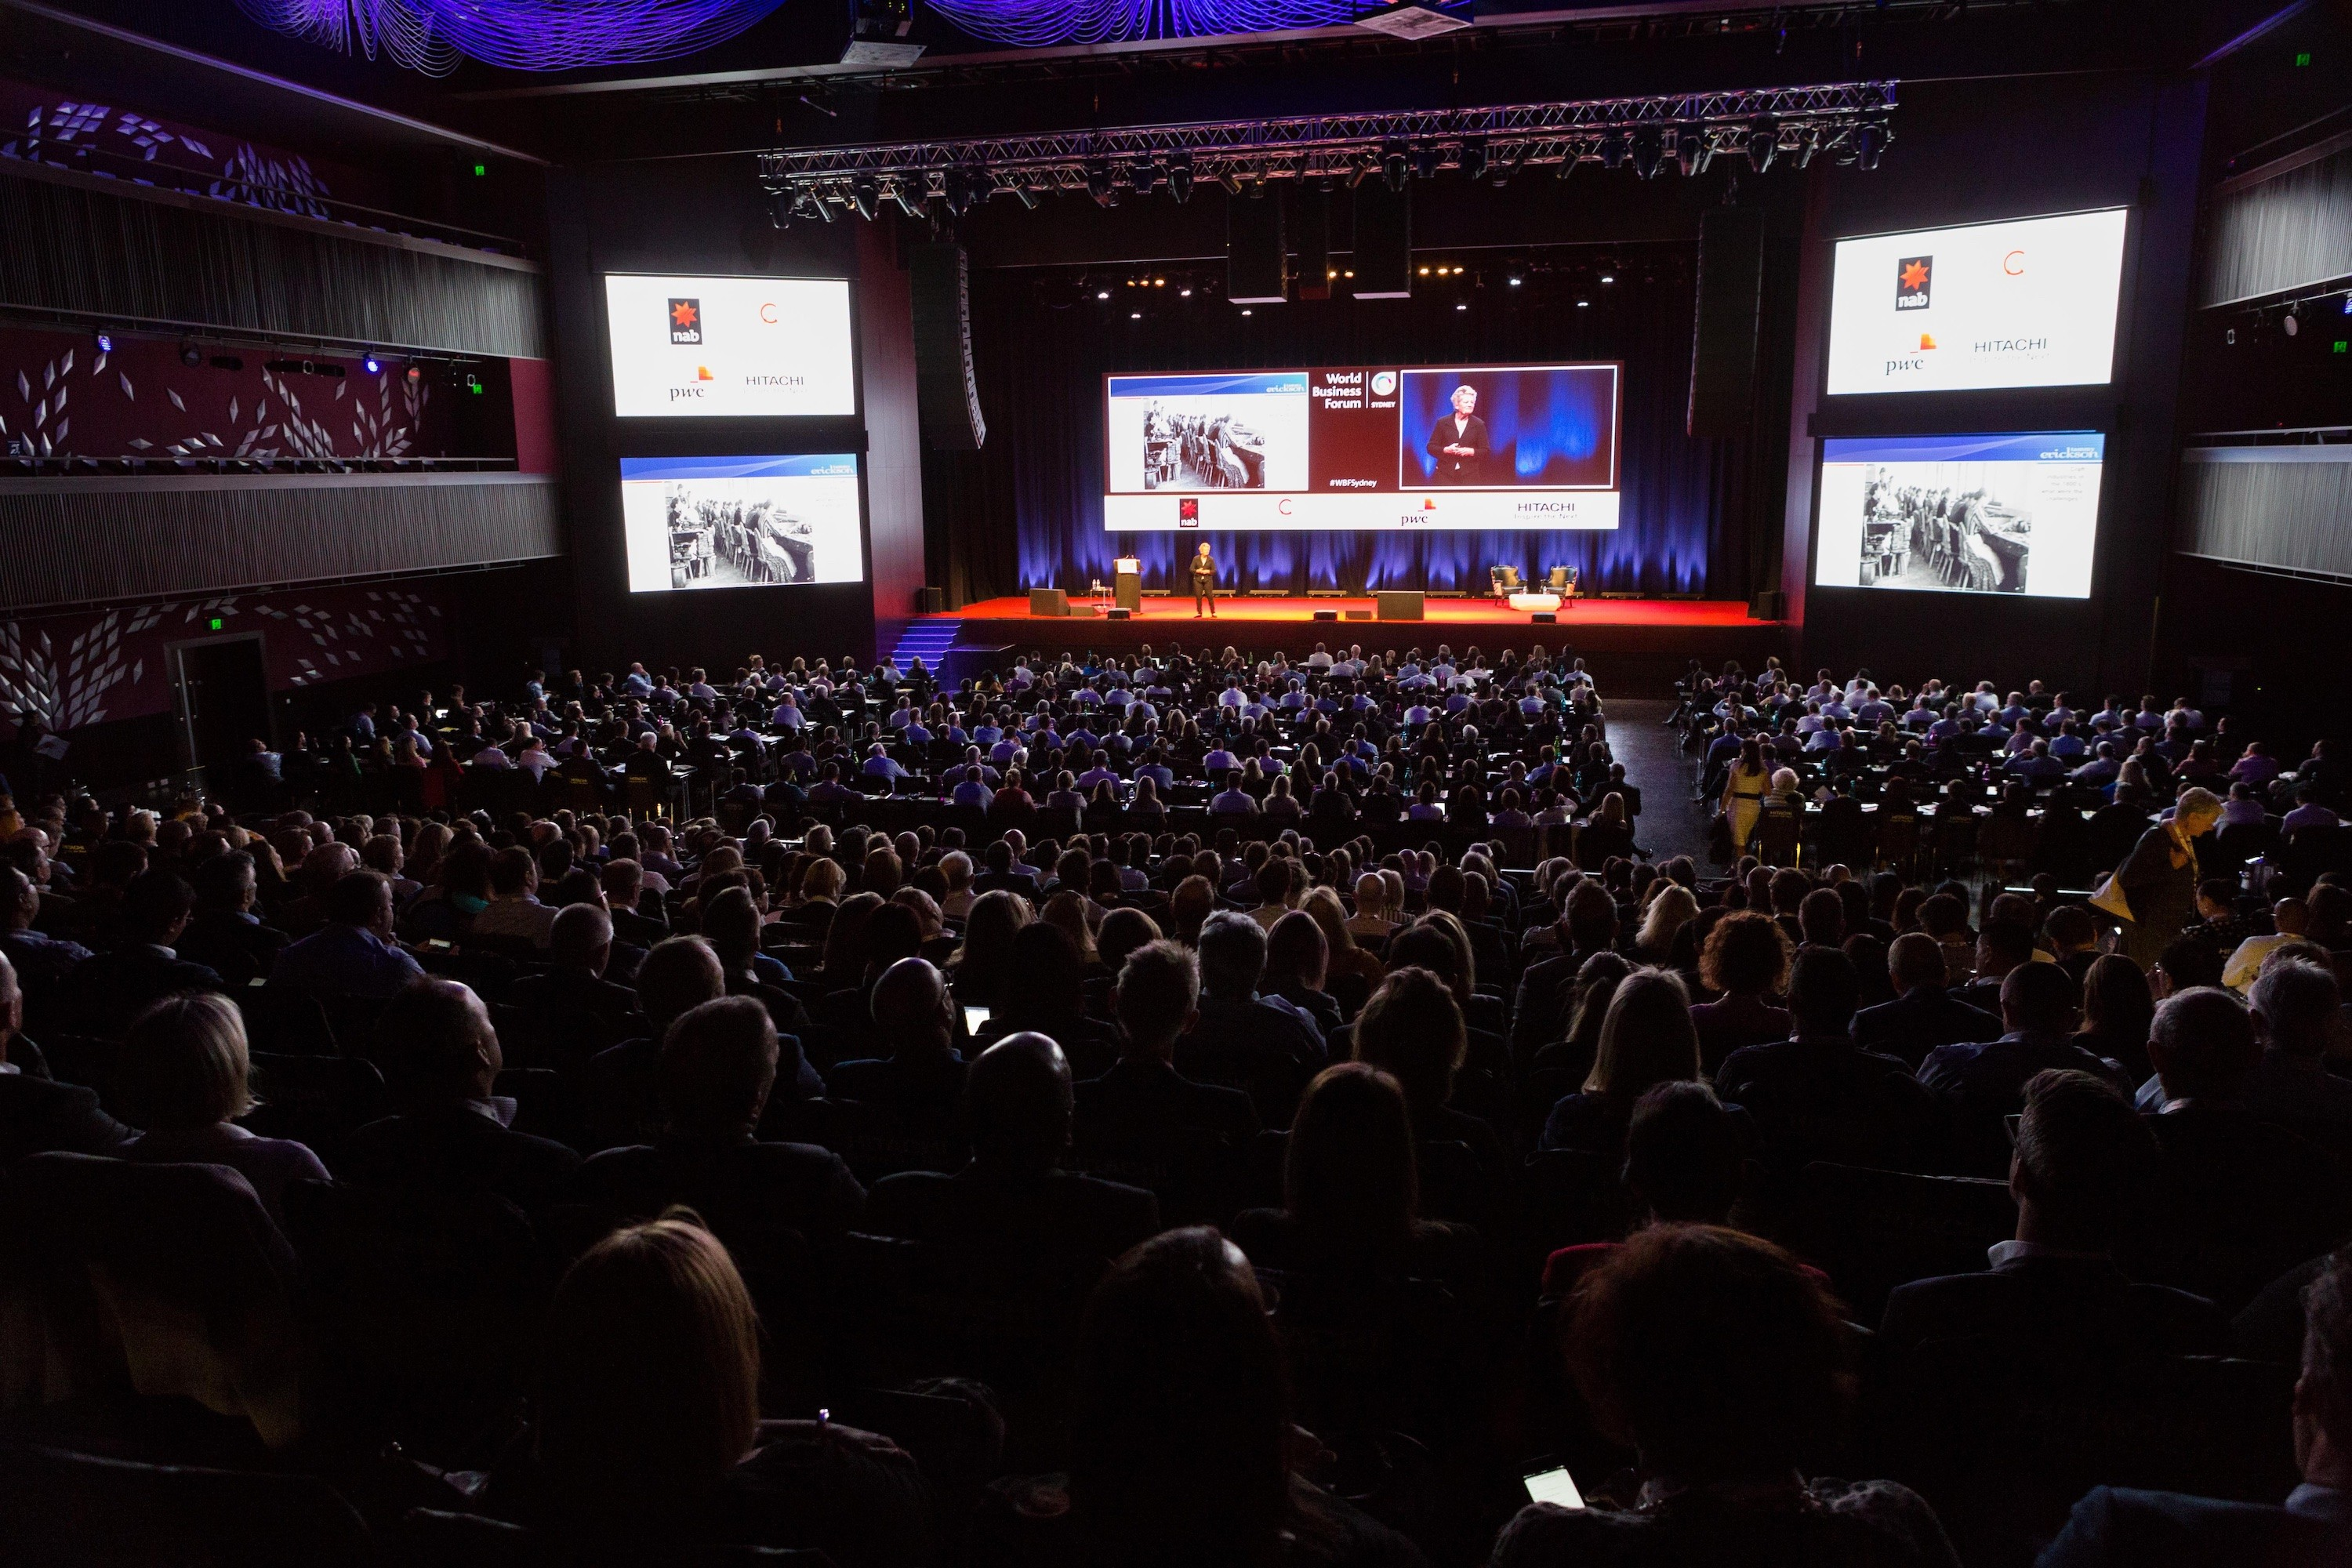 Audience looking at WOBI World Business Forum stage